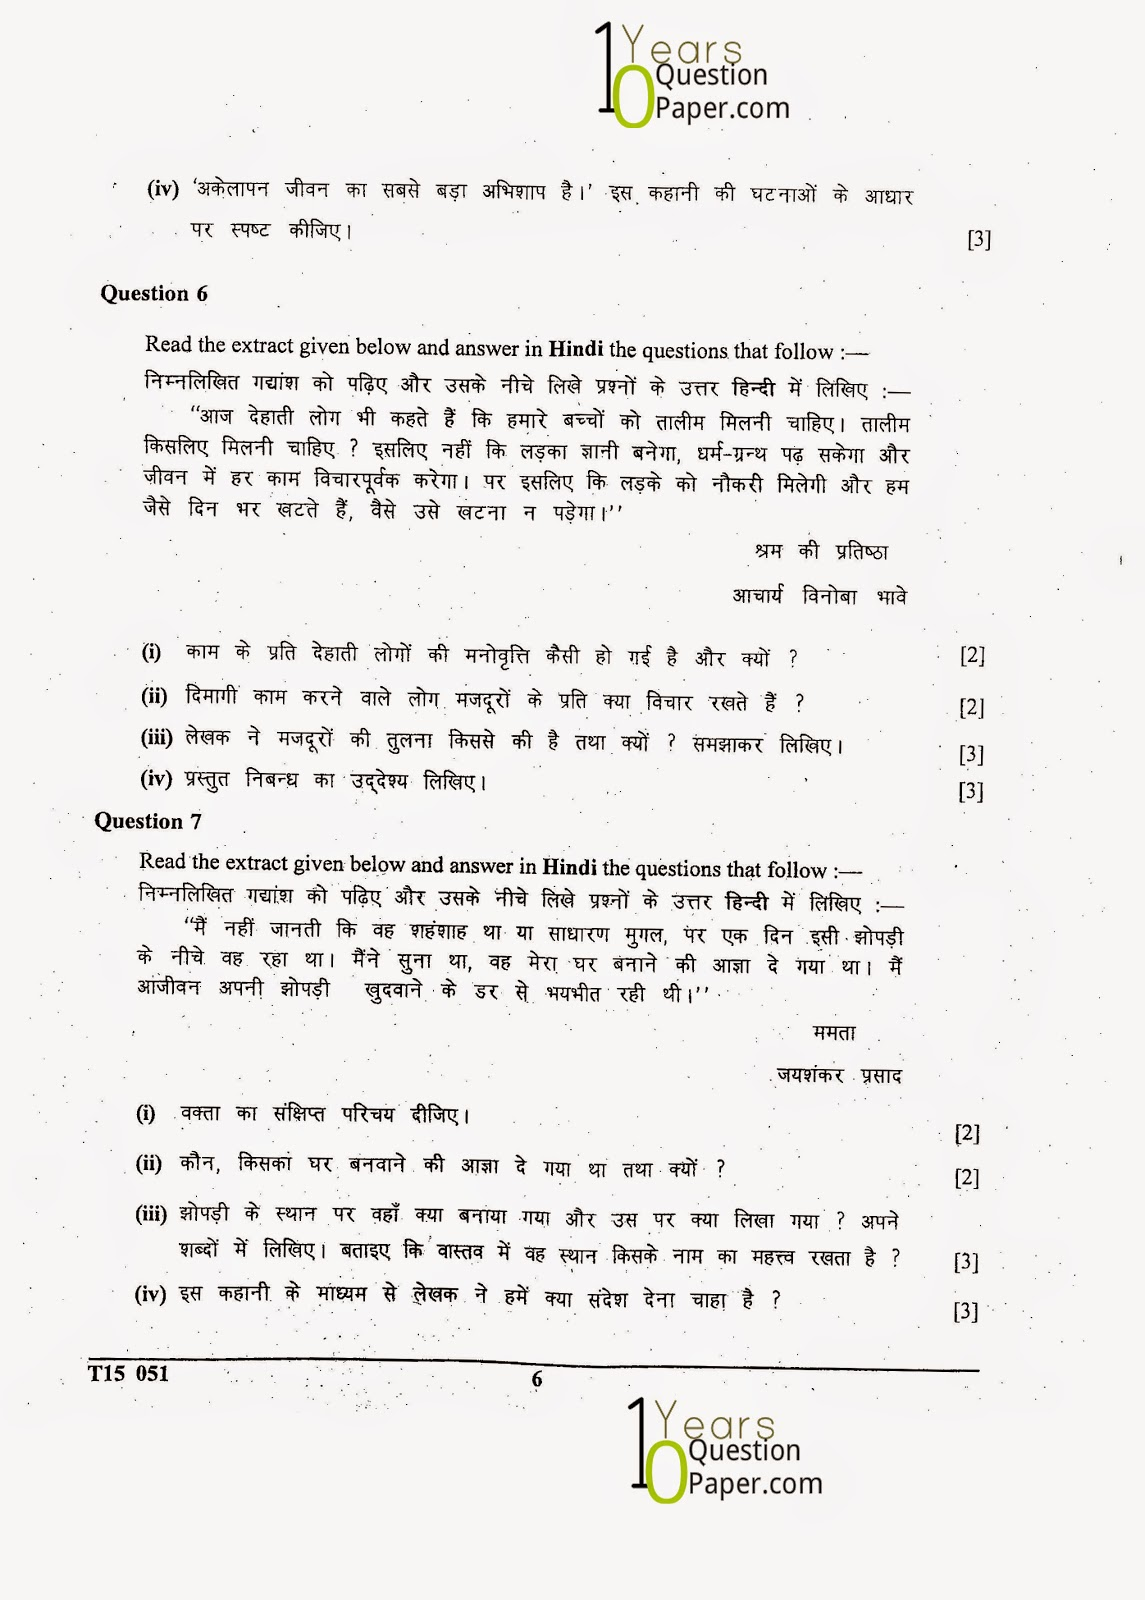 ICSE 2015 : Hindi Class X Board Question Paper - 10 Years Question ...